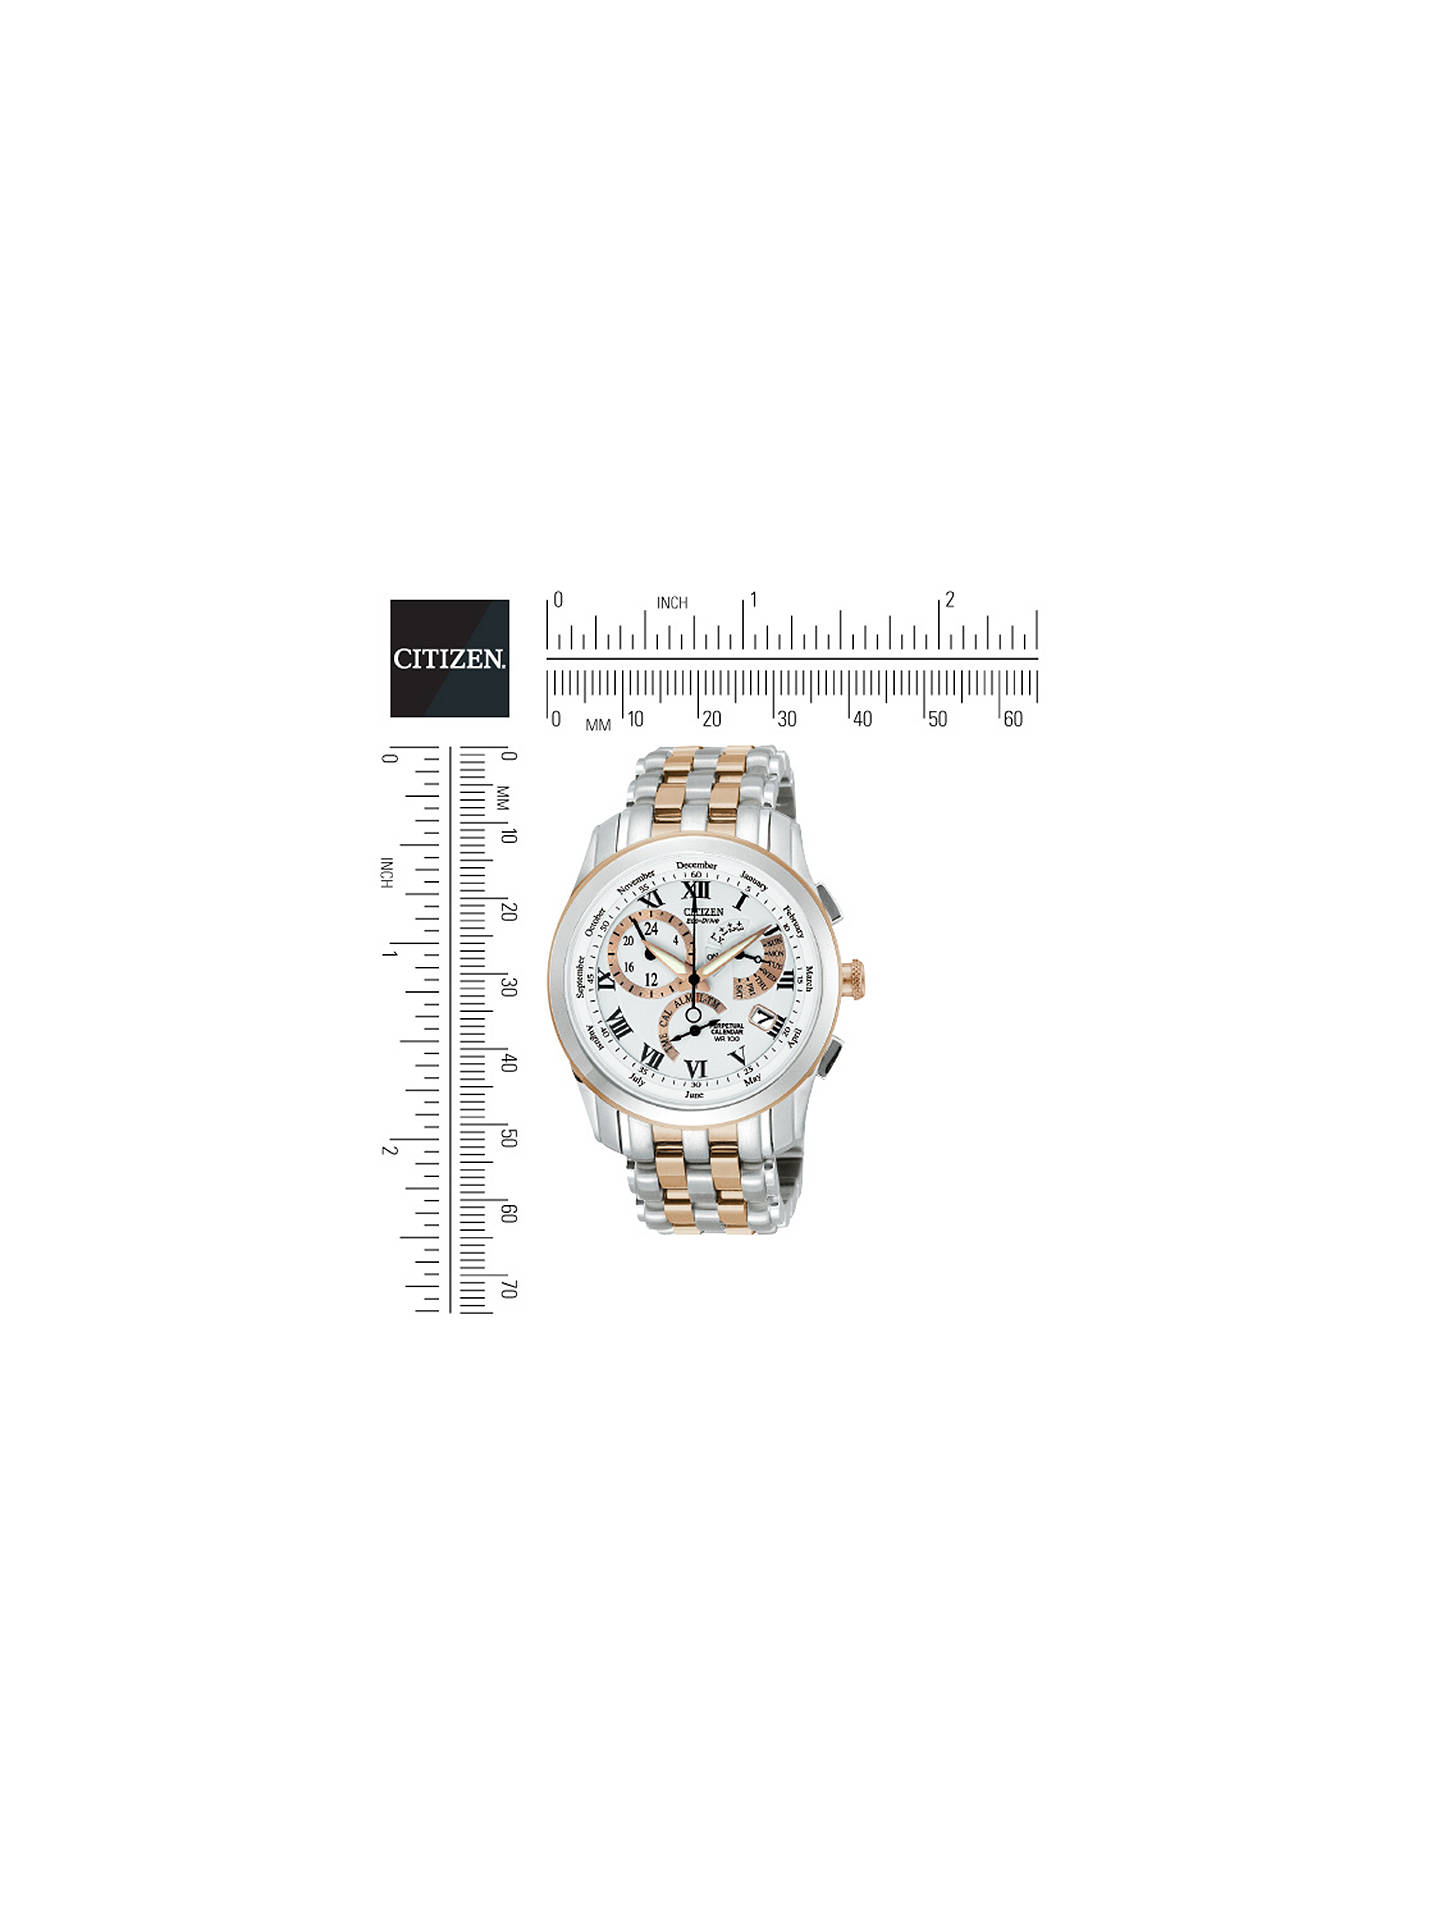 Citizen BL8106-53A Men's Calibre 8700 Alarm Chronograph